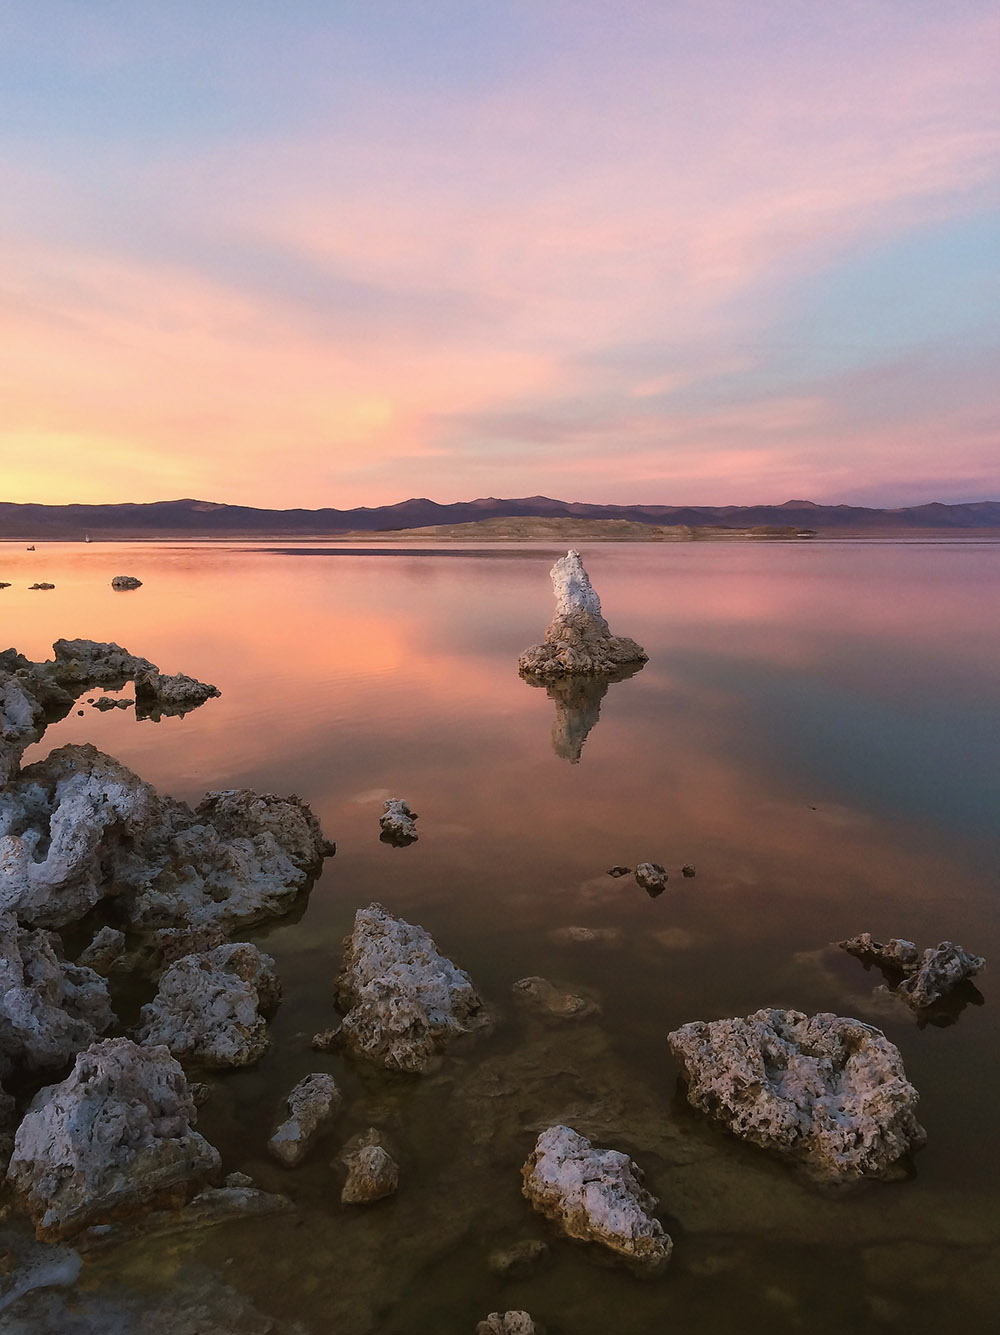 Processed with VSCOcam with m4 preset